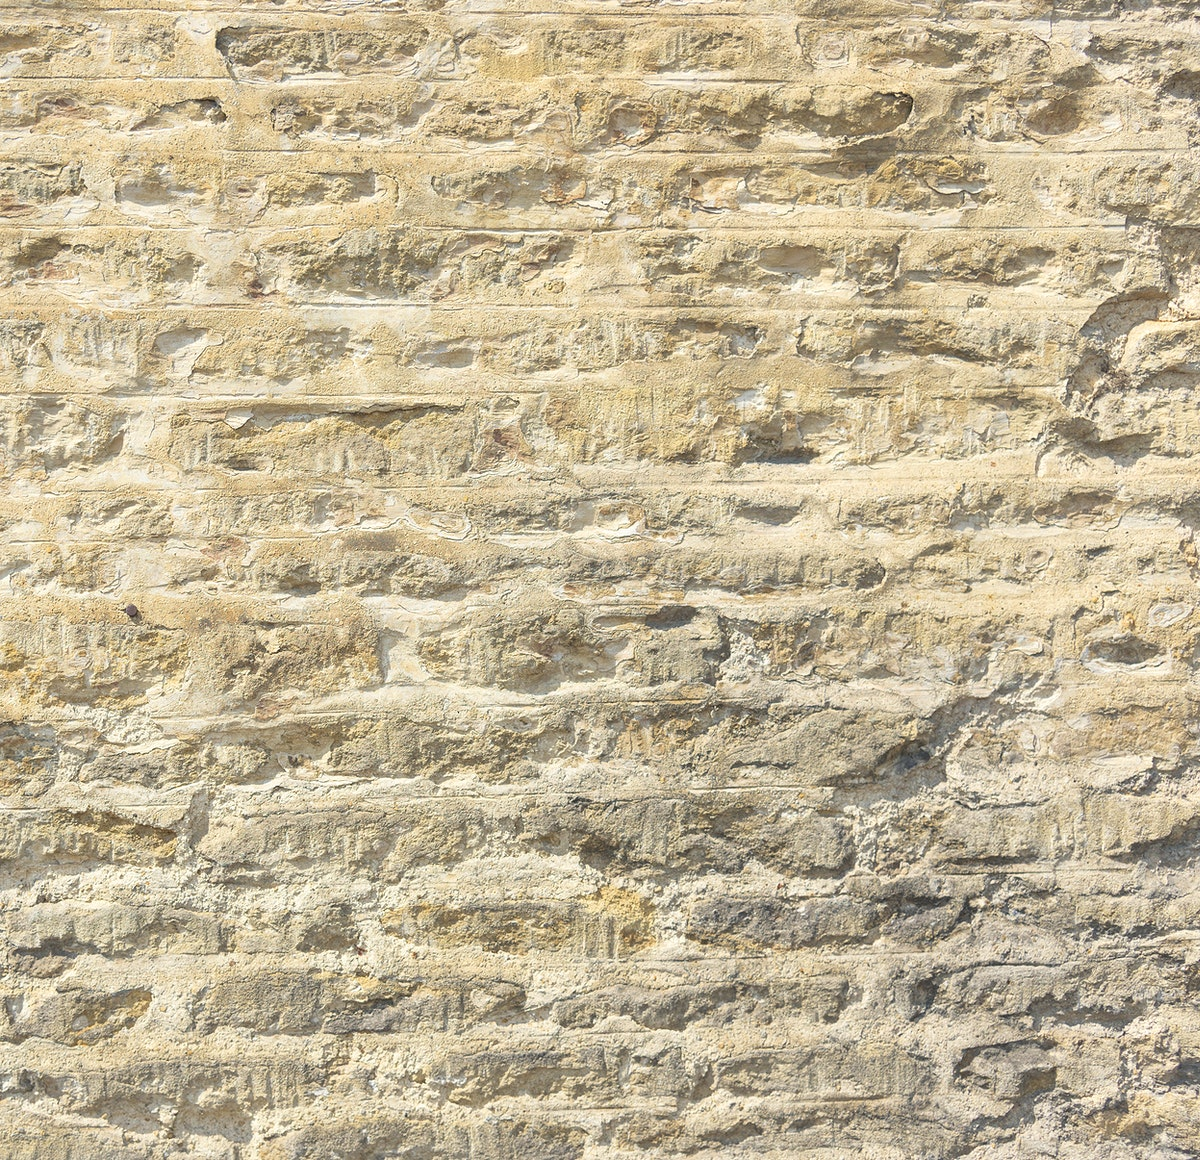 Rough textured wall